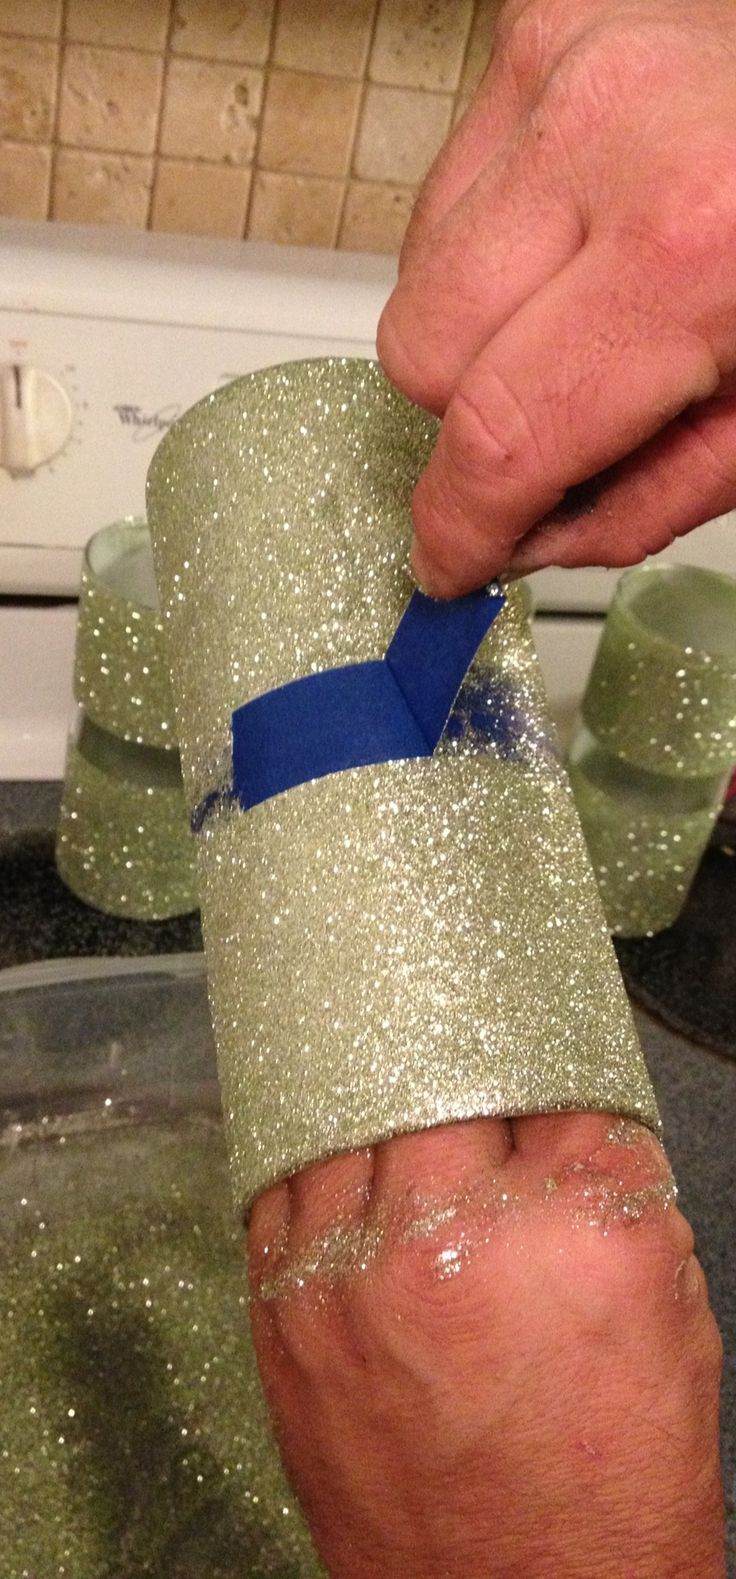 Glitter Flower Vases Table Decor. 1. Tape Off Line With Painters Tape; 2